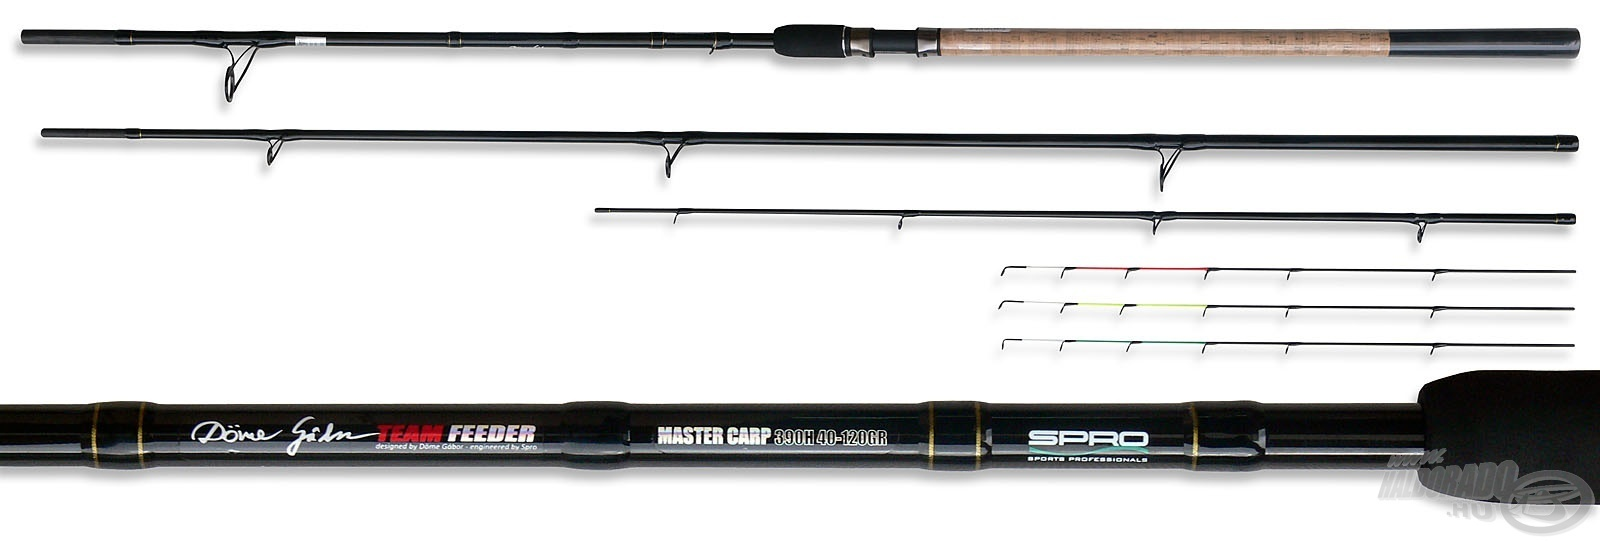 SPRO Team Feeder Master Carp 390MH - by D�me G�bor 19990Ft